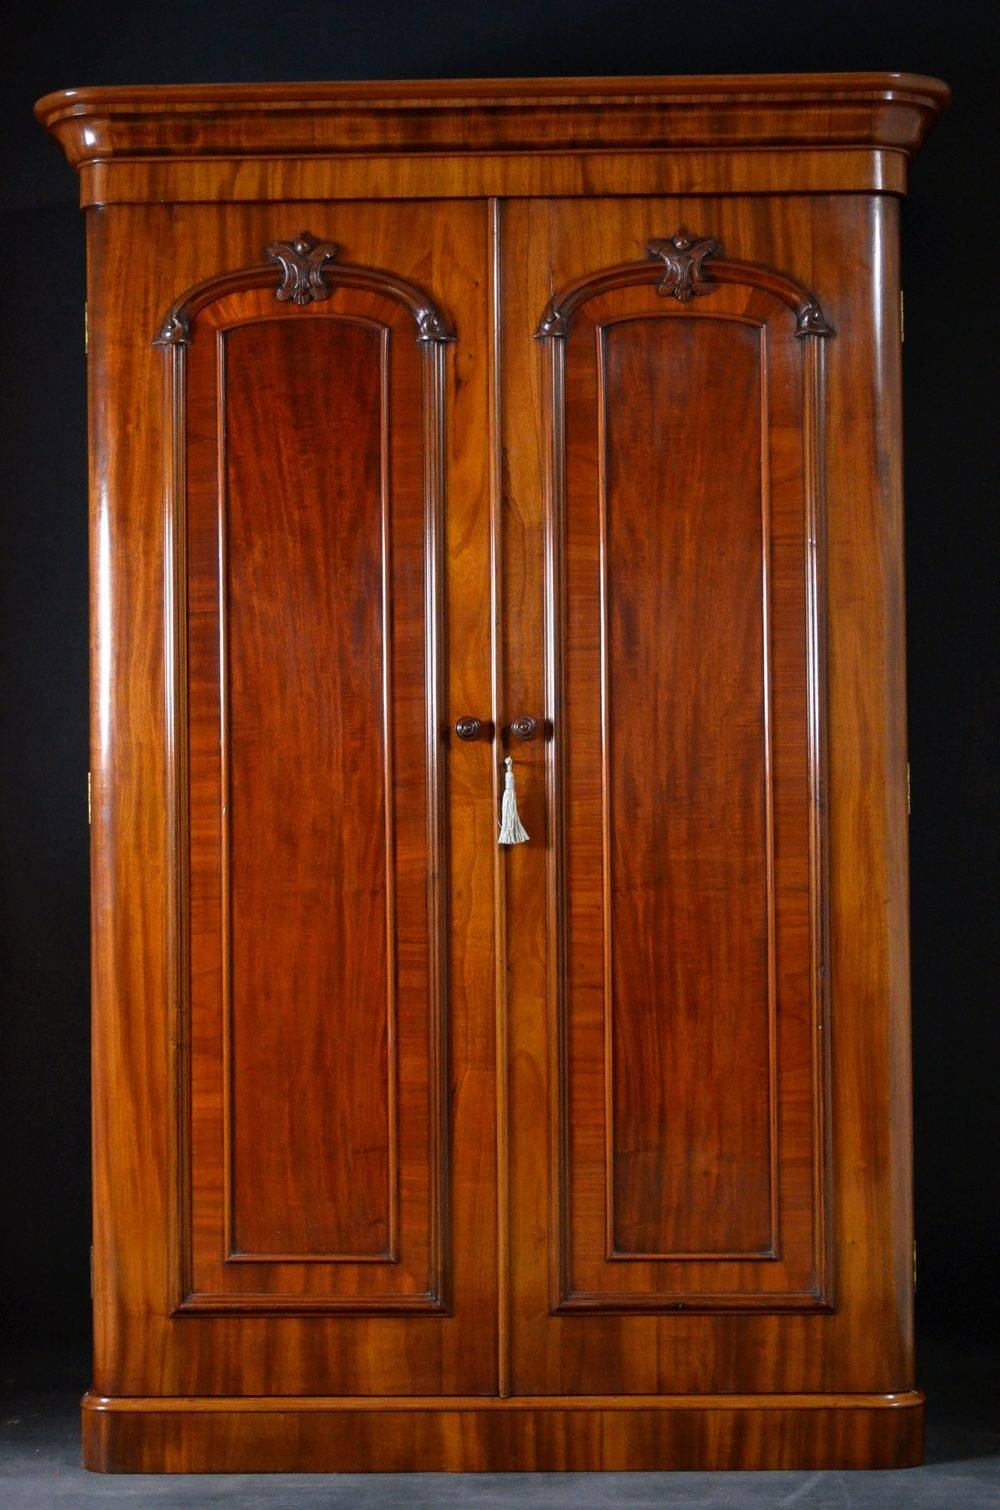 Victorian Double Wardrobe - Mahogany Wardrobe - Antiques Atlas intended for Victorian Wardrobes For Sale (Image 12 of 15)